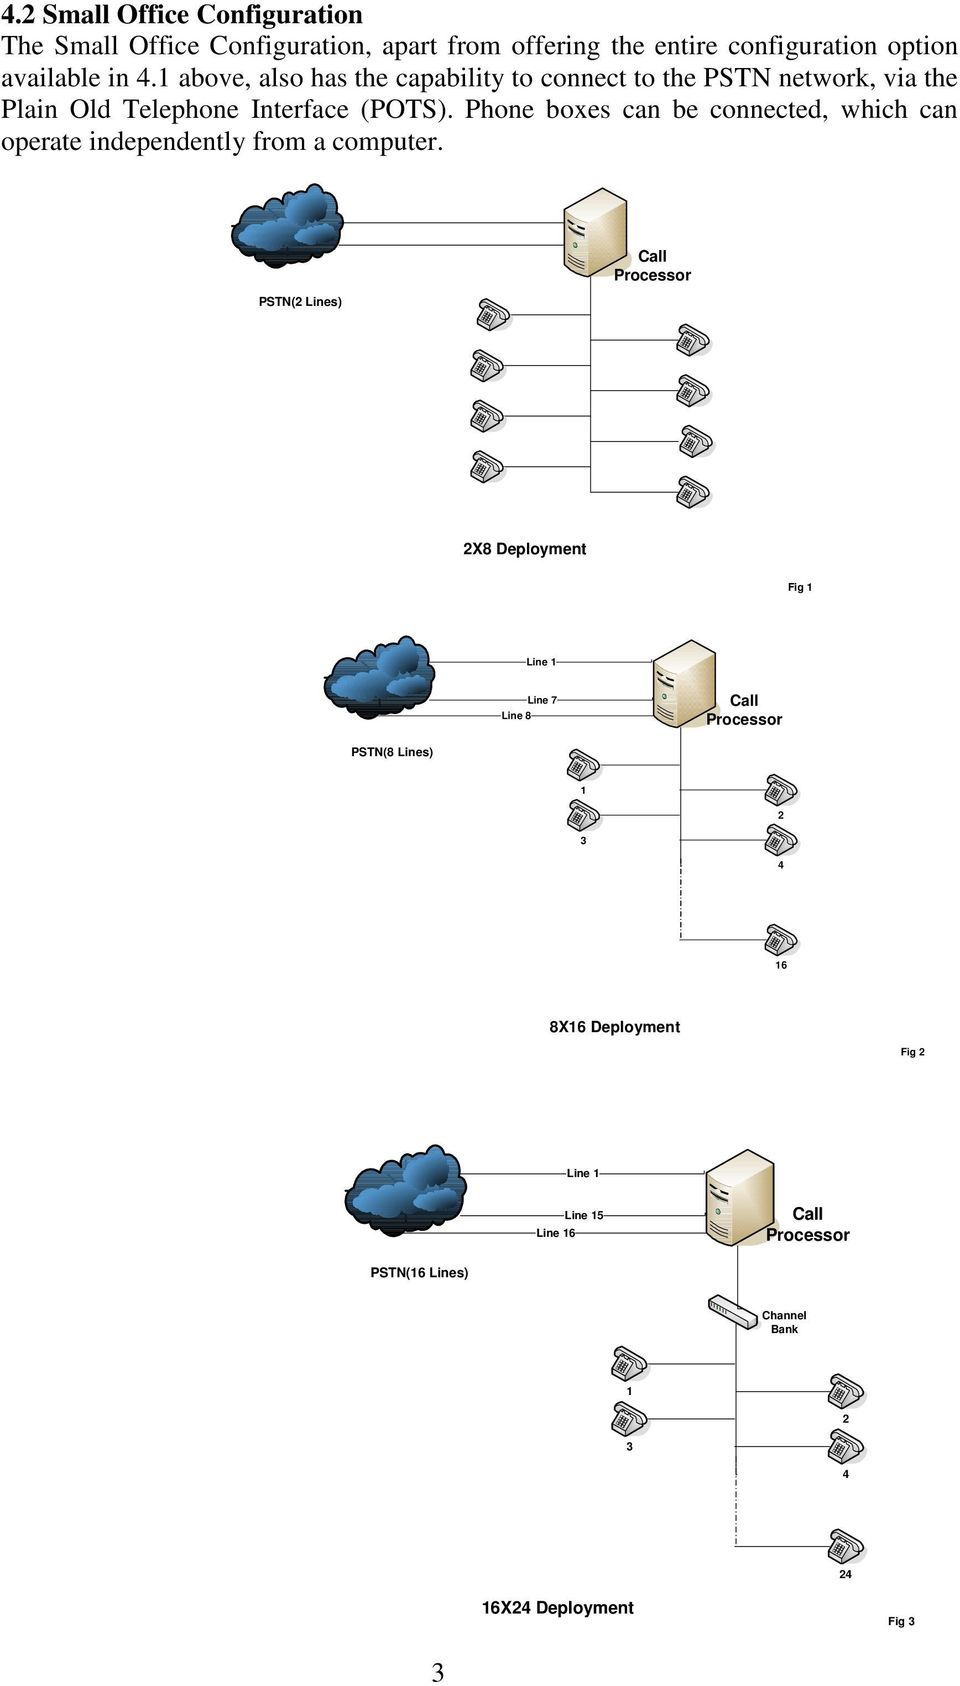 above, also has the capability to connect to the PSTN network, via the Plain Old Telephone Interface (POTS).